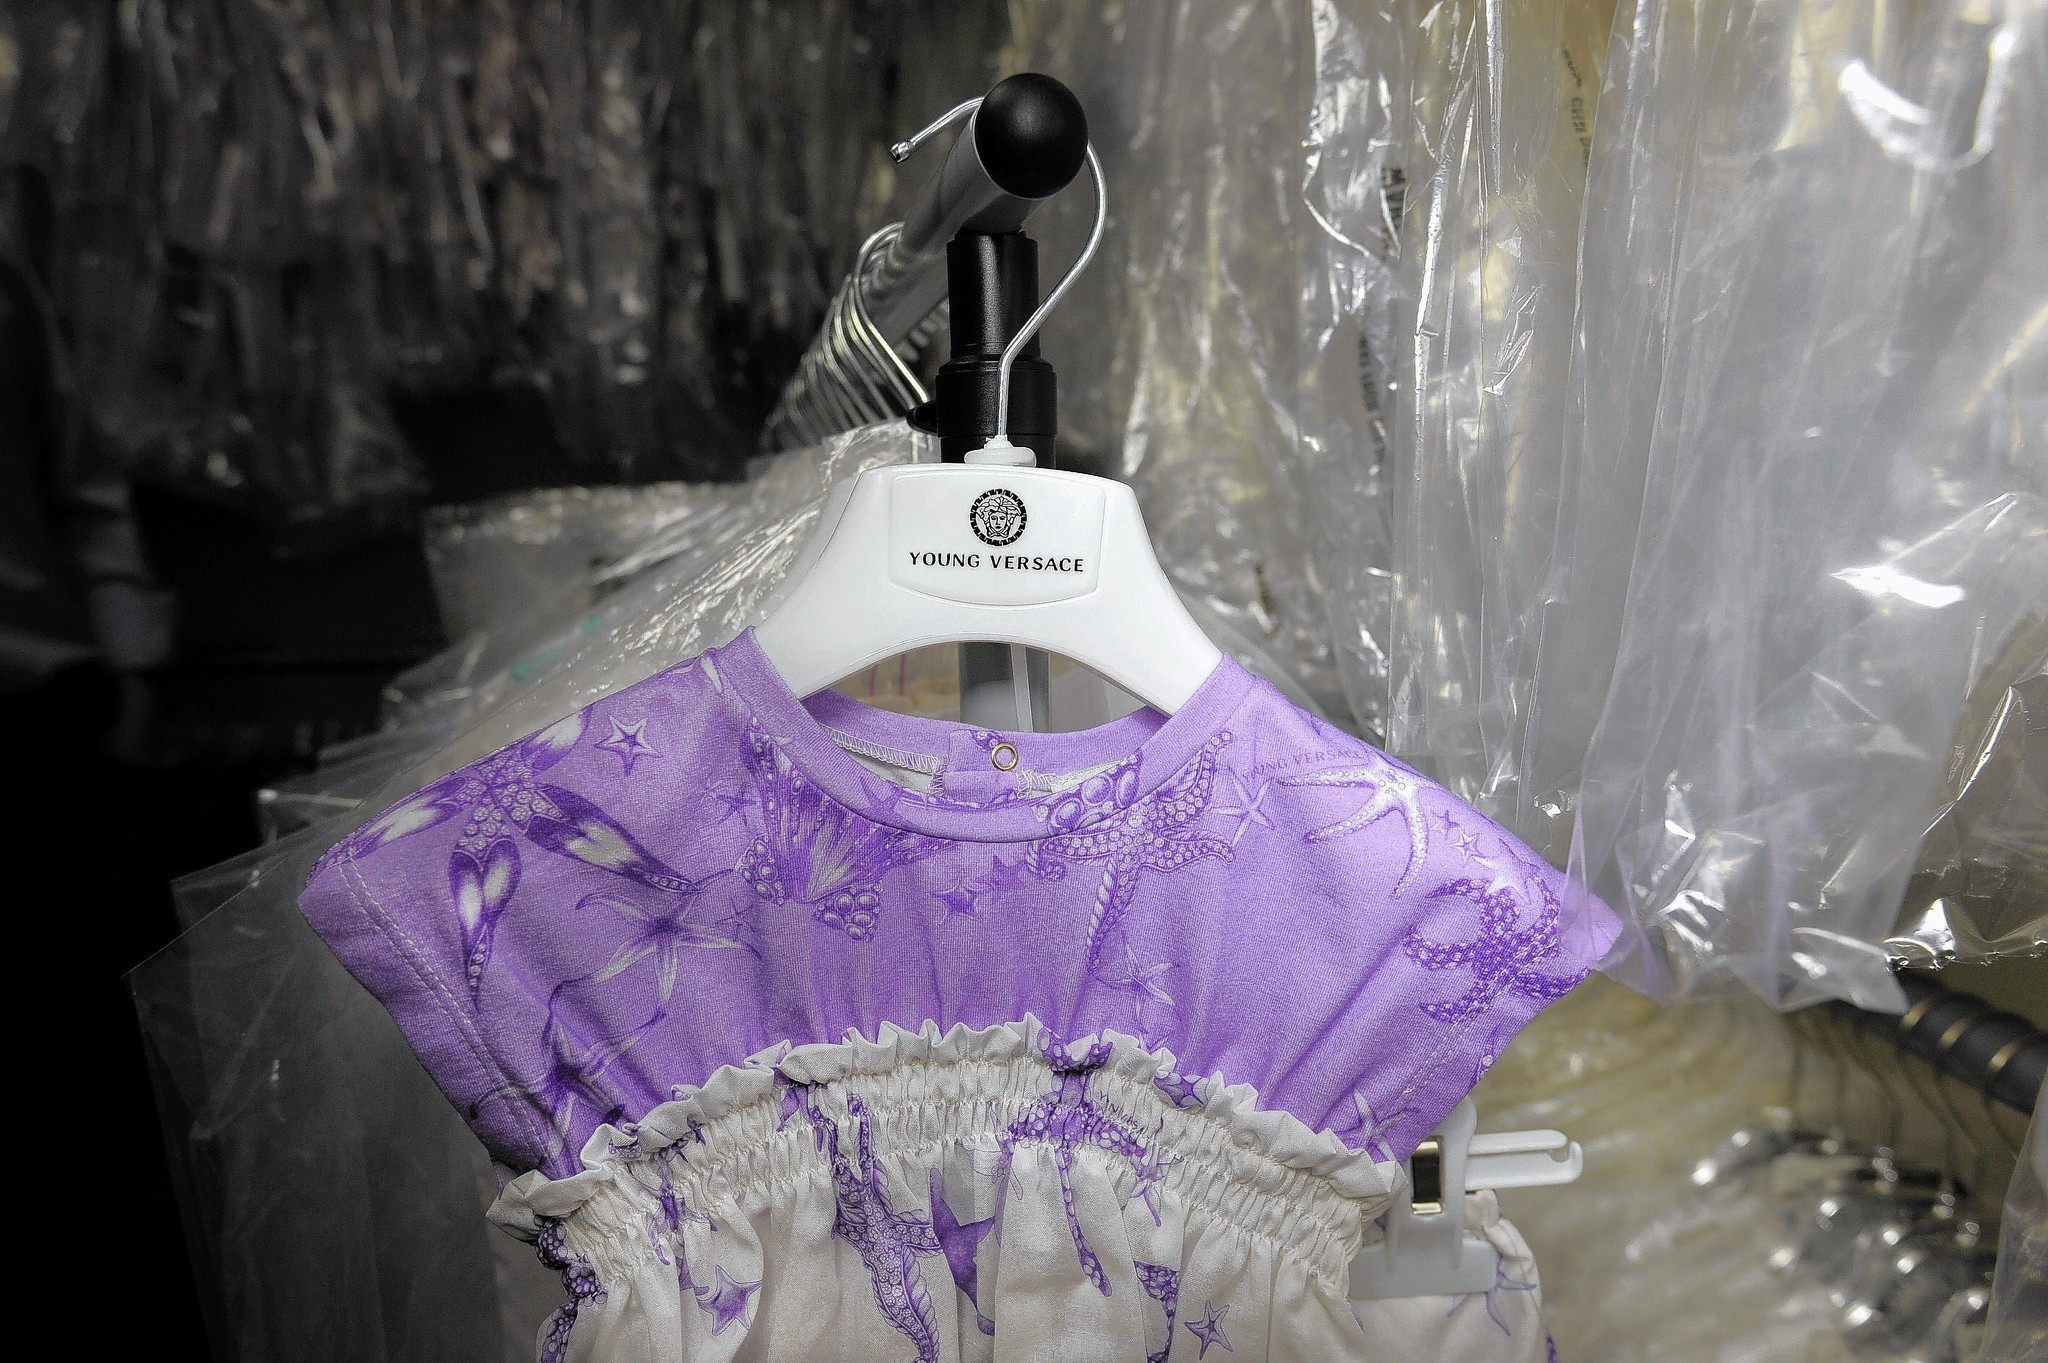 Borrow Mini Couture A Timonium Startup Offers Childrens Couture For Rent